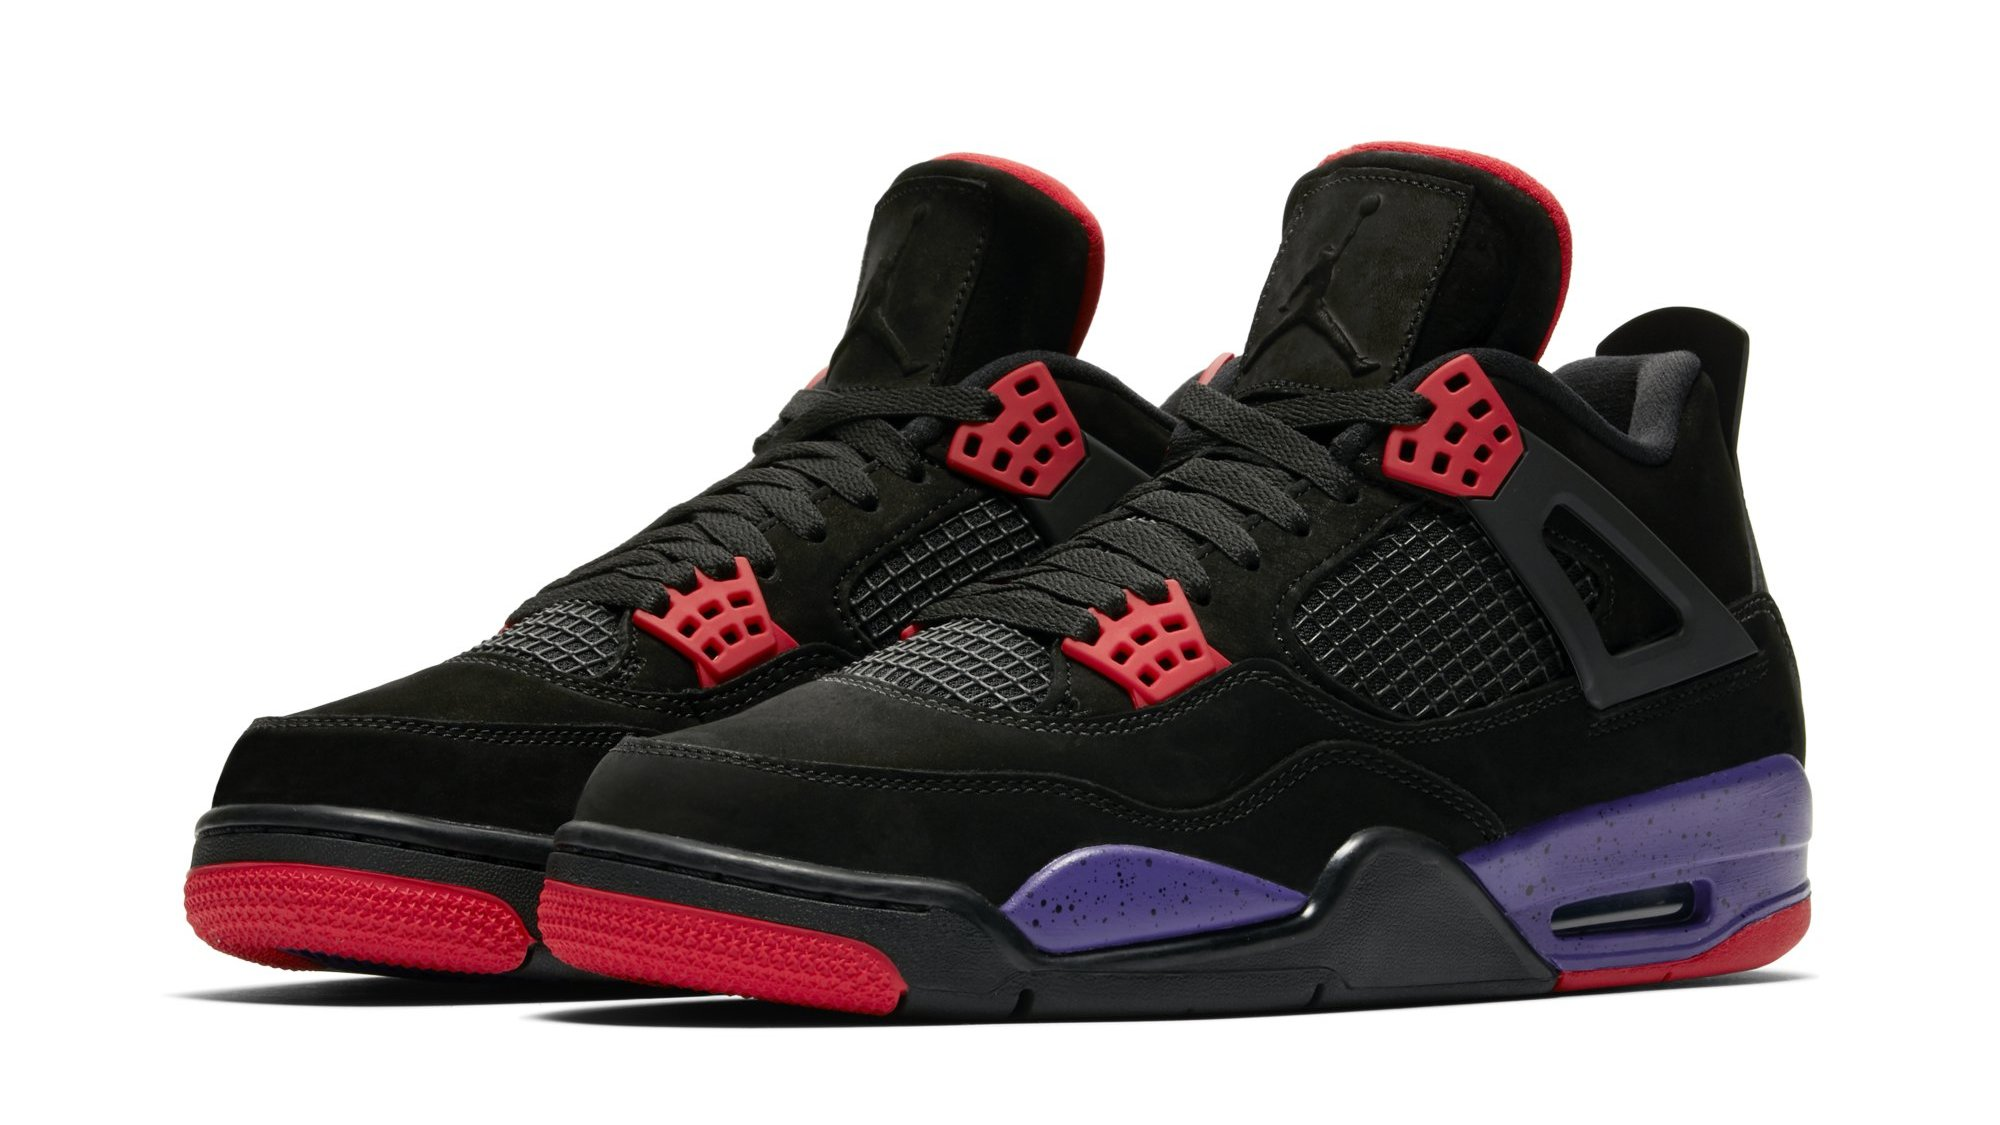 2ade78c64f5d56 Air Jordan 4 Retro NRG  Black University Red Court Purple   AQ3816-056  Release Date